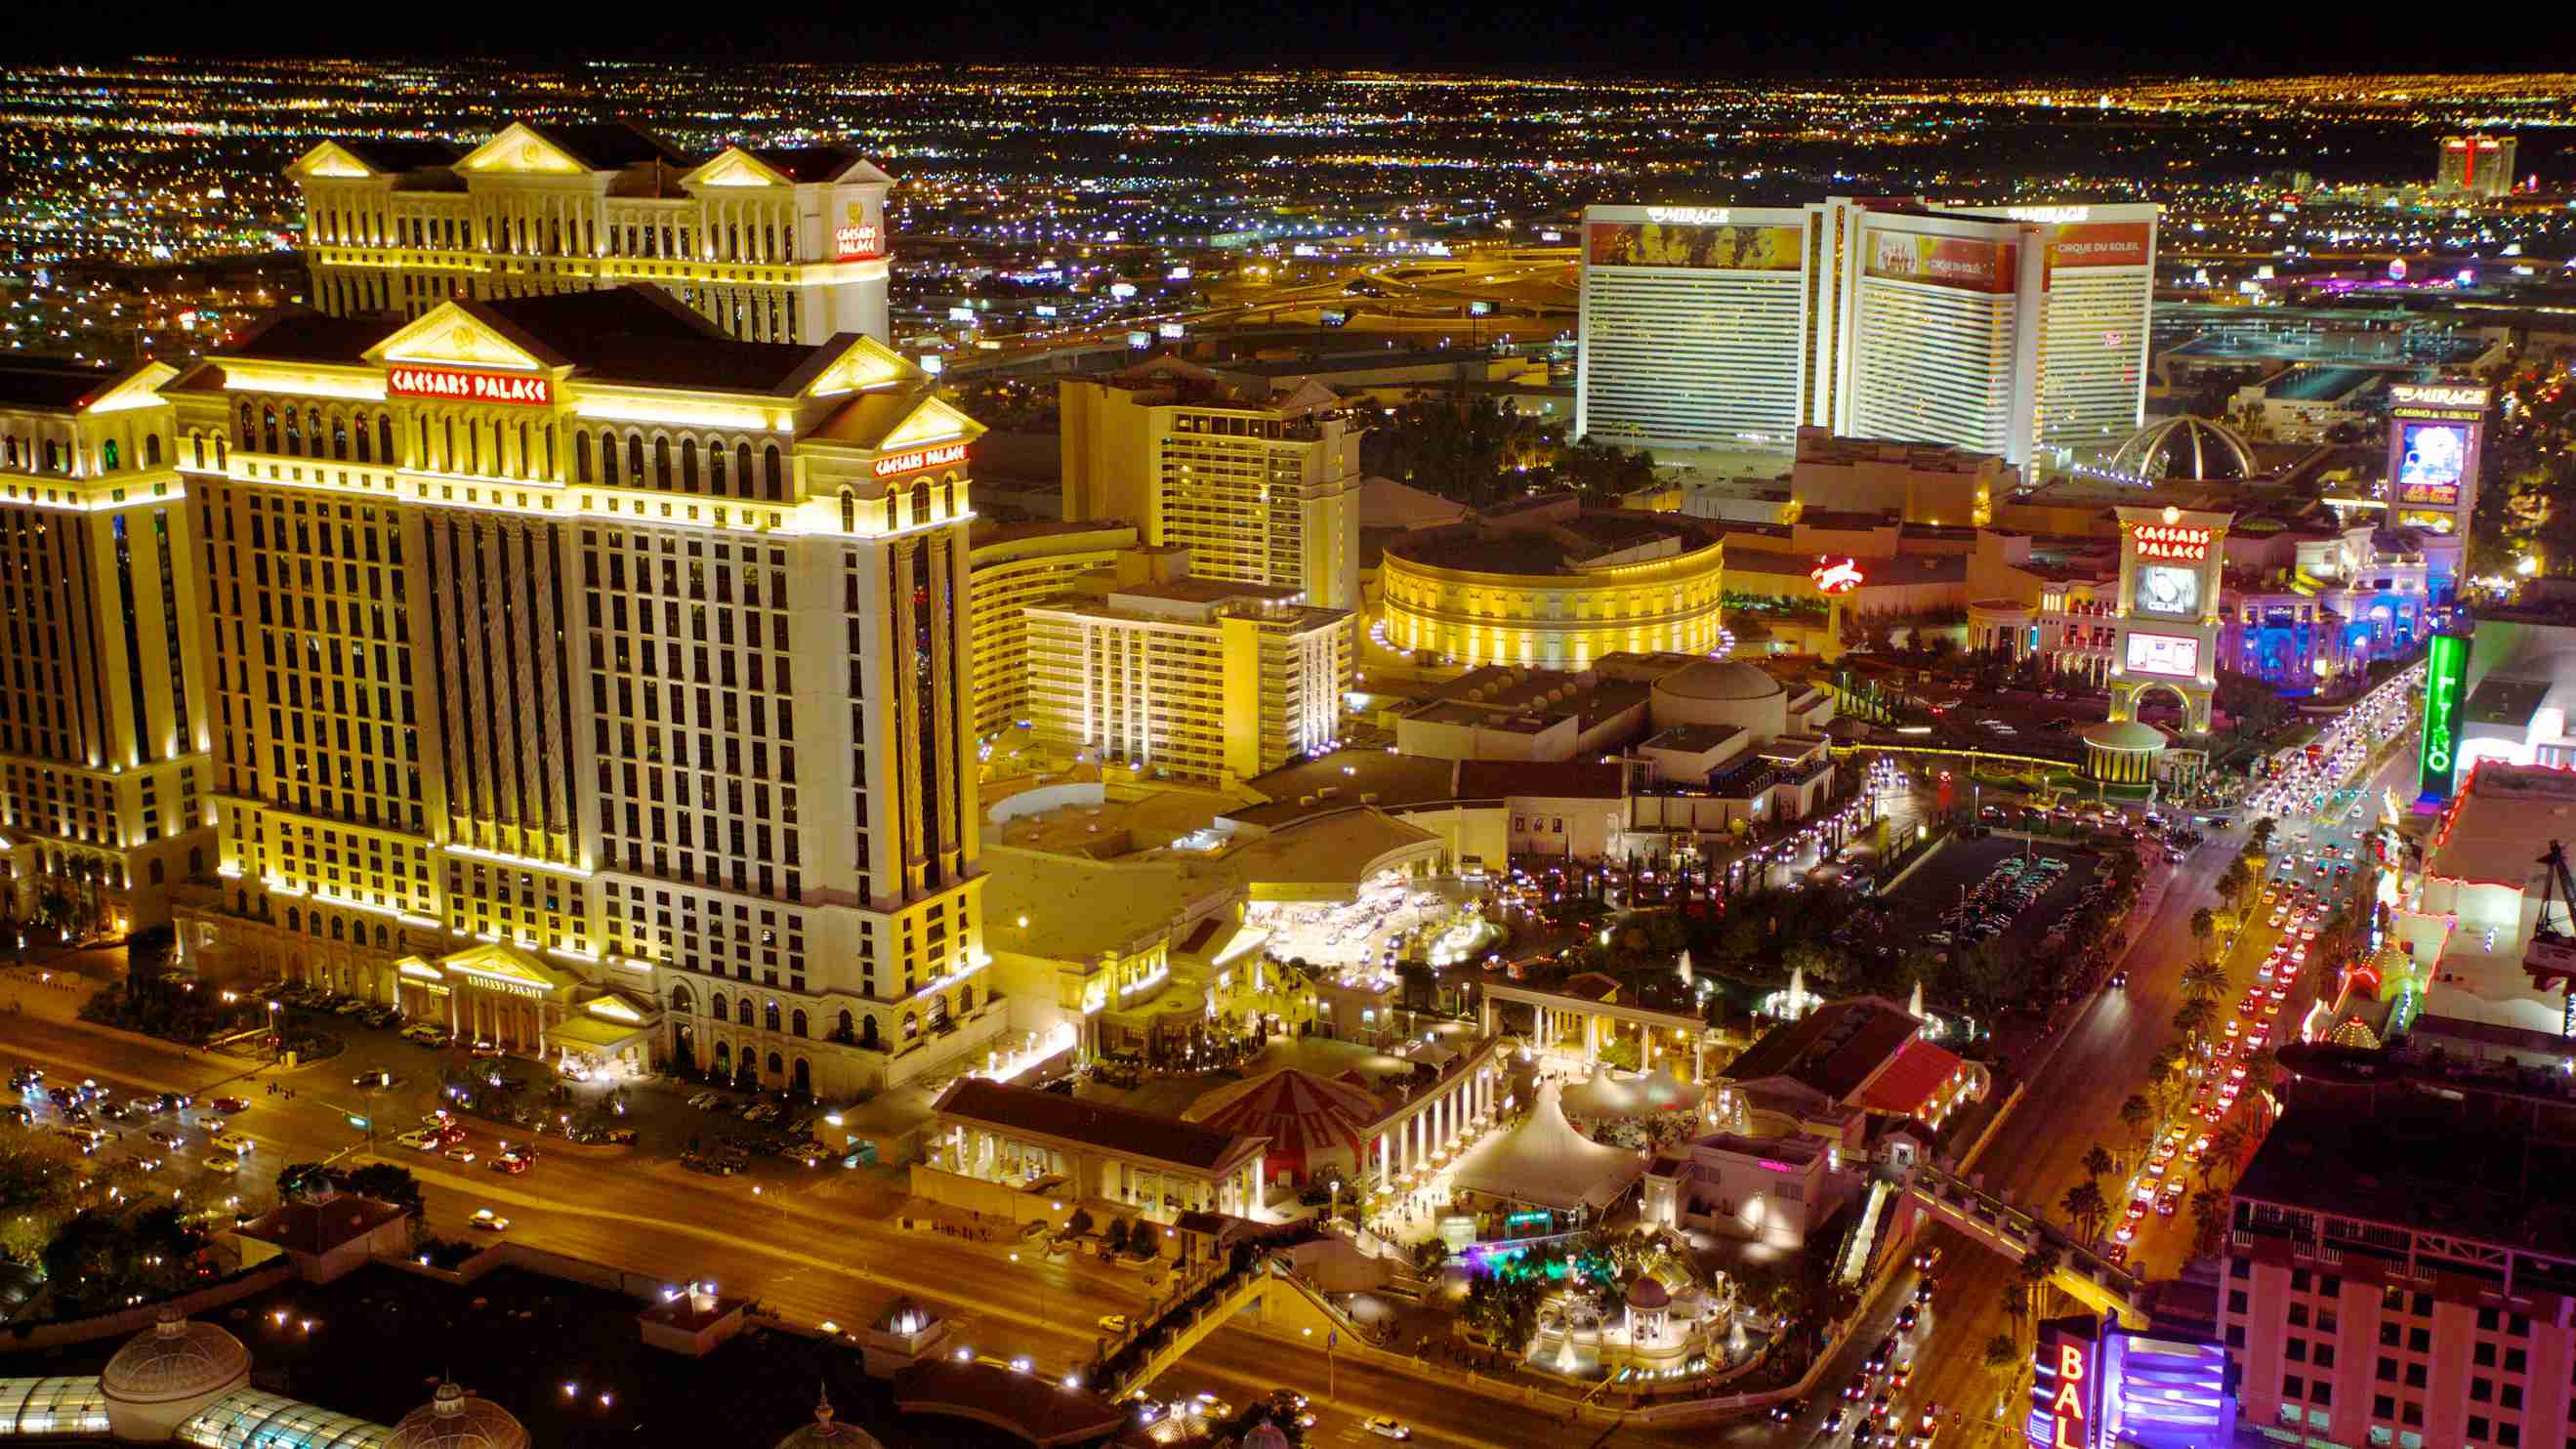 las vegas vacations 2019 package save up to 583 expedia rh expedia com las vegas hotel and flight packages cheap las vegas hotel and flight deals